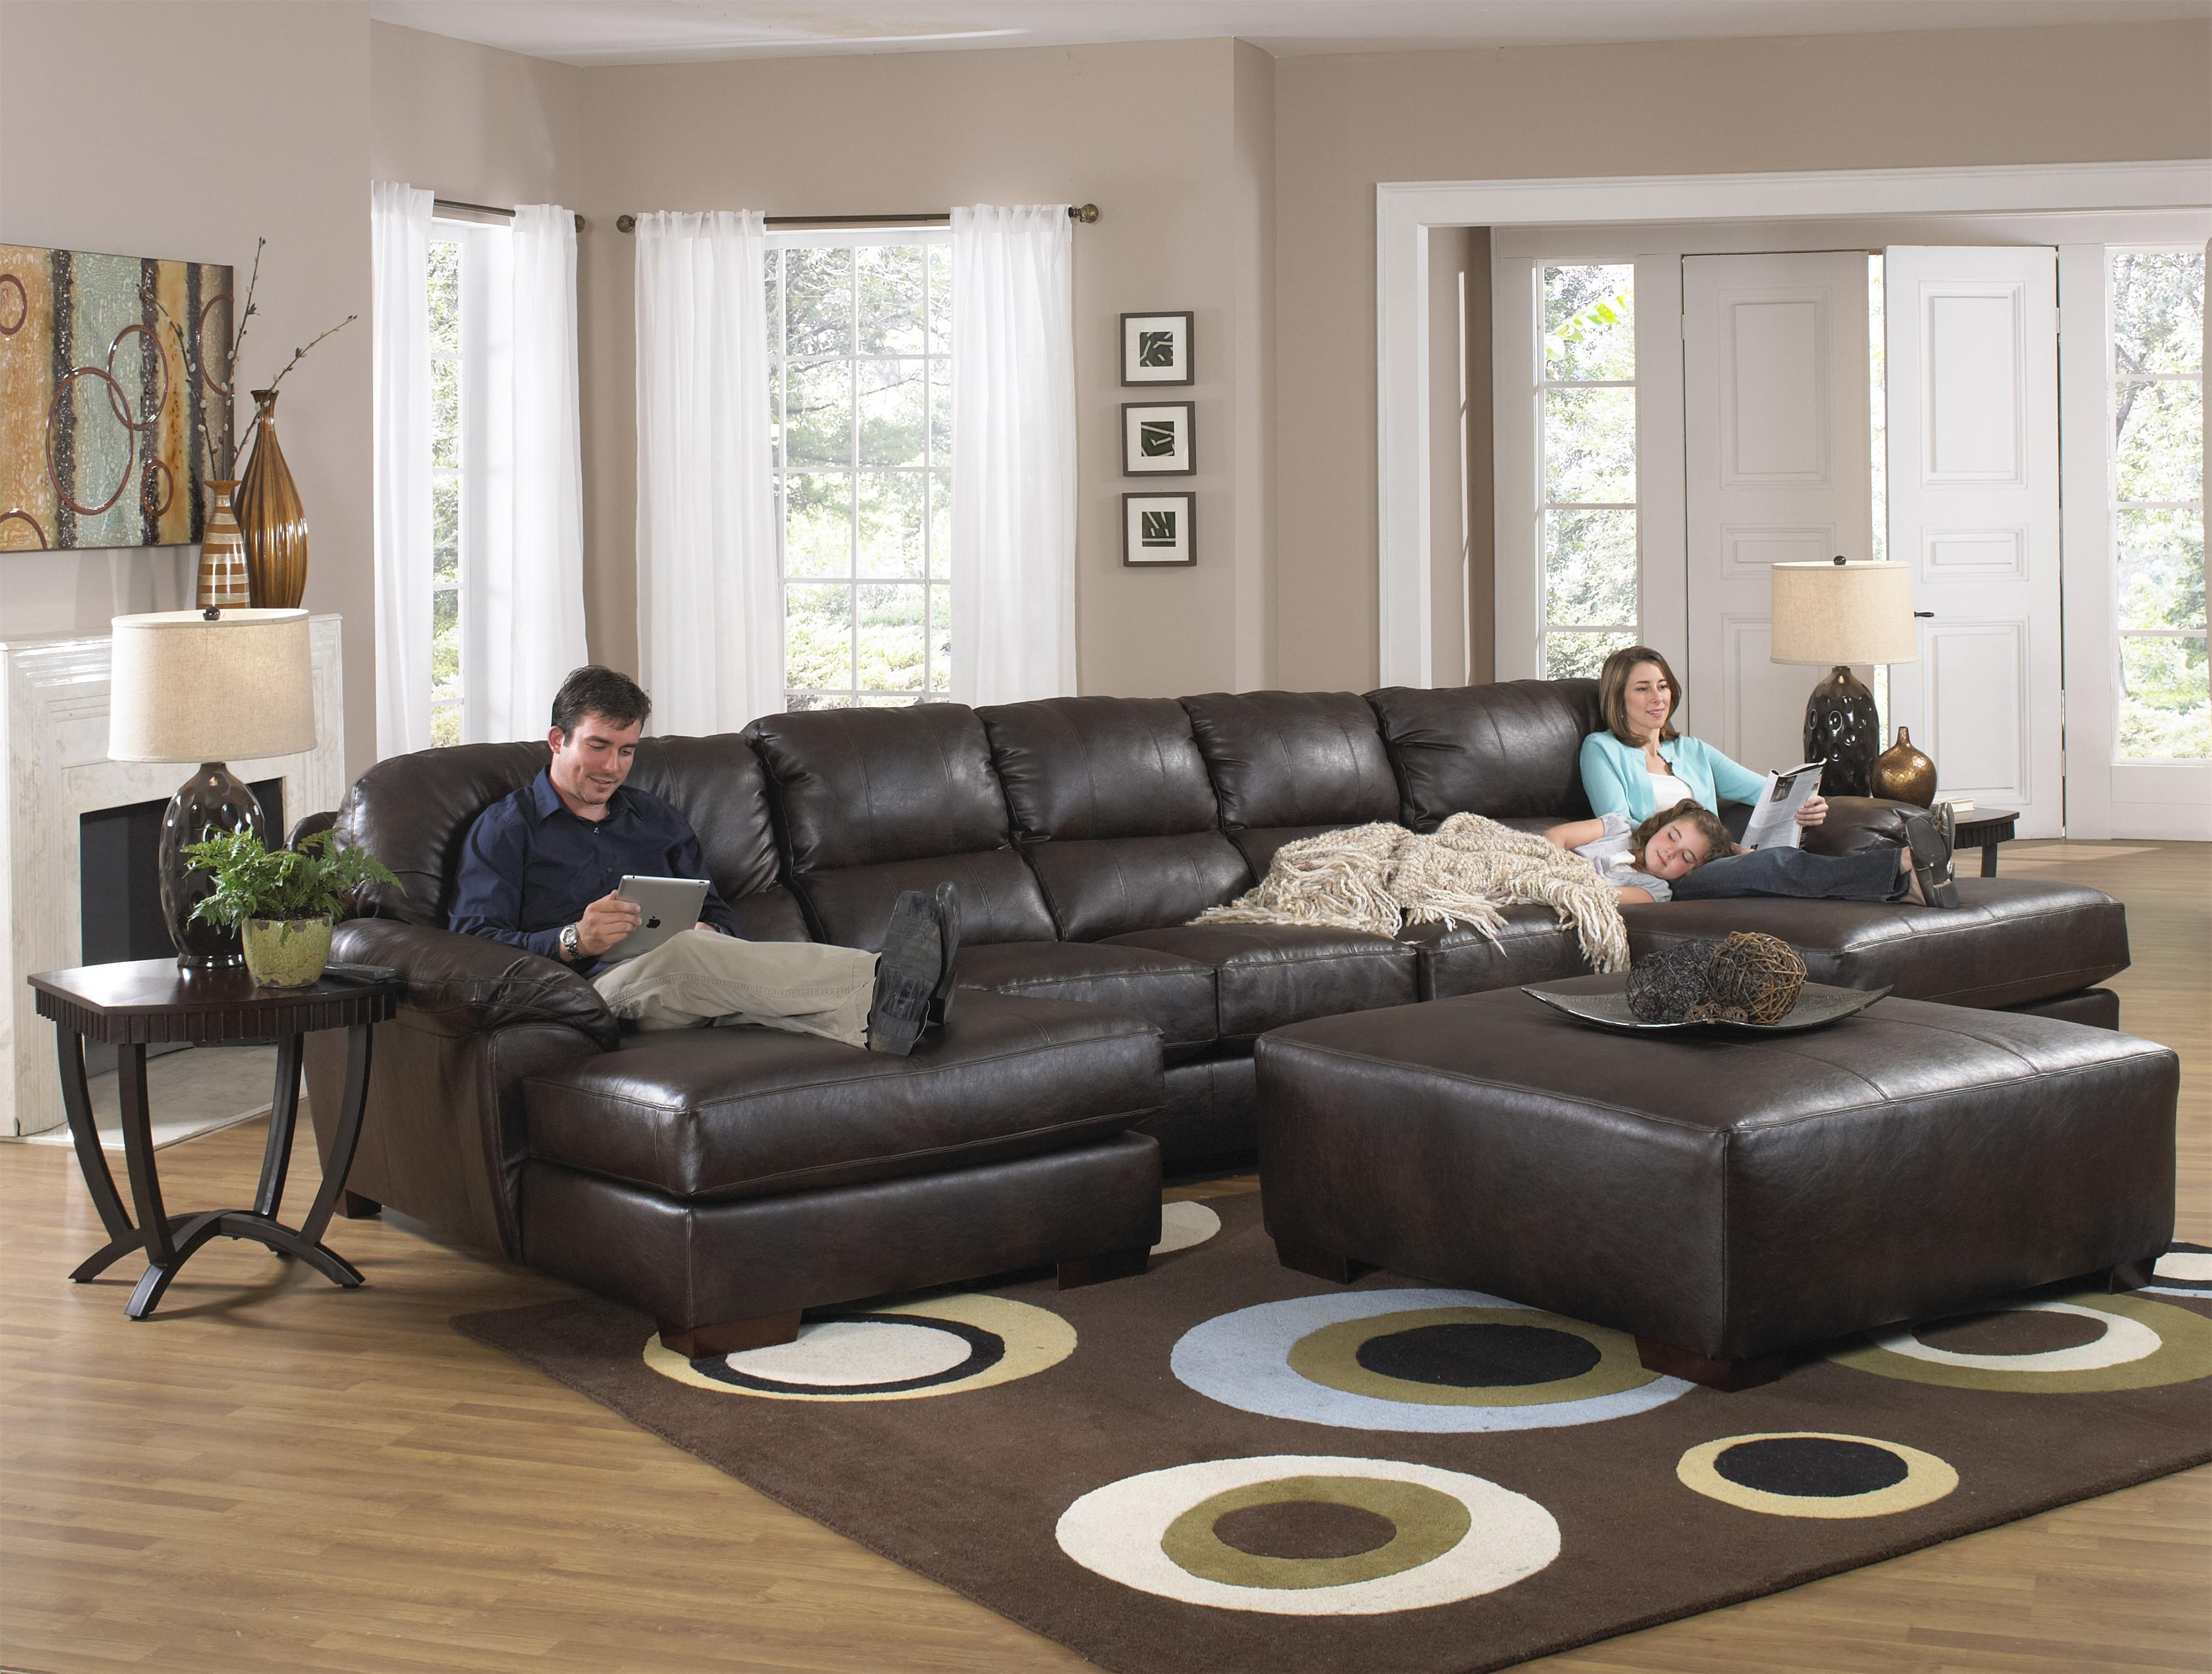 Two Chaise Sectional Sofa With Five Total Seatsjackson For Most Popular Double Chaise Sofas (View 8 of 15)